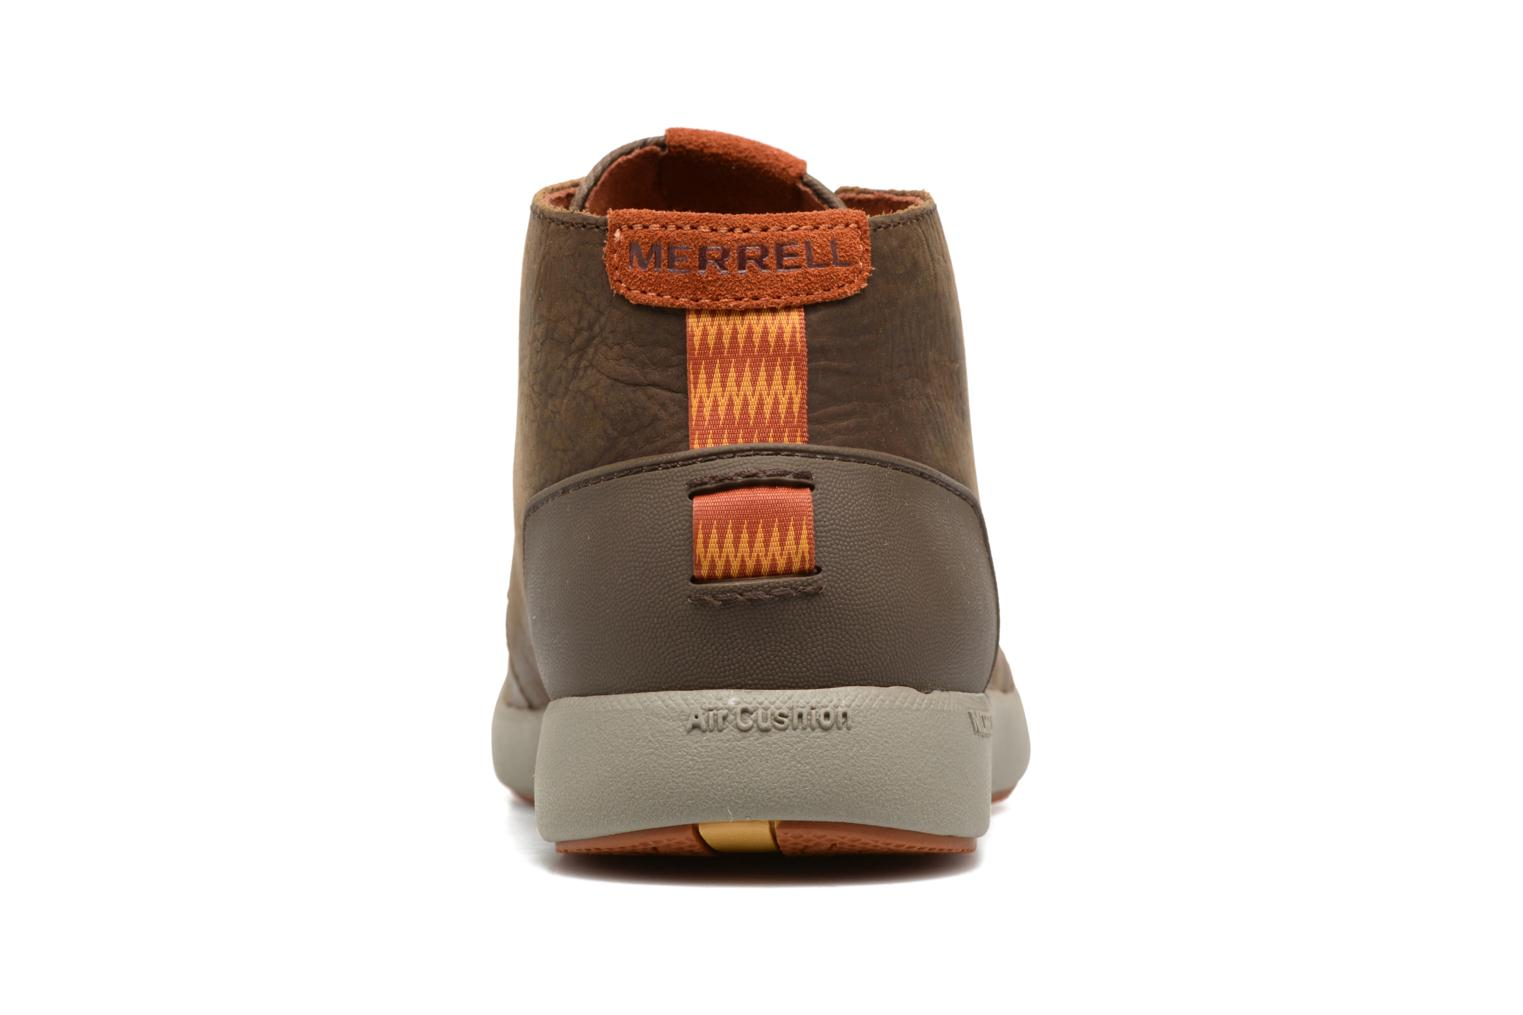 Dark Earth Merrell Freewheel Chukka (Marron)